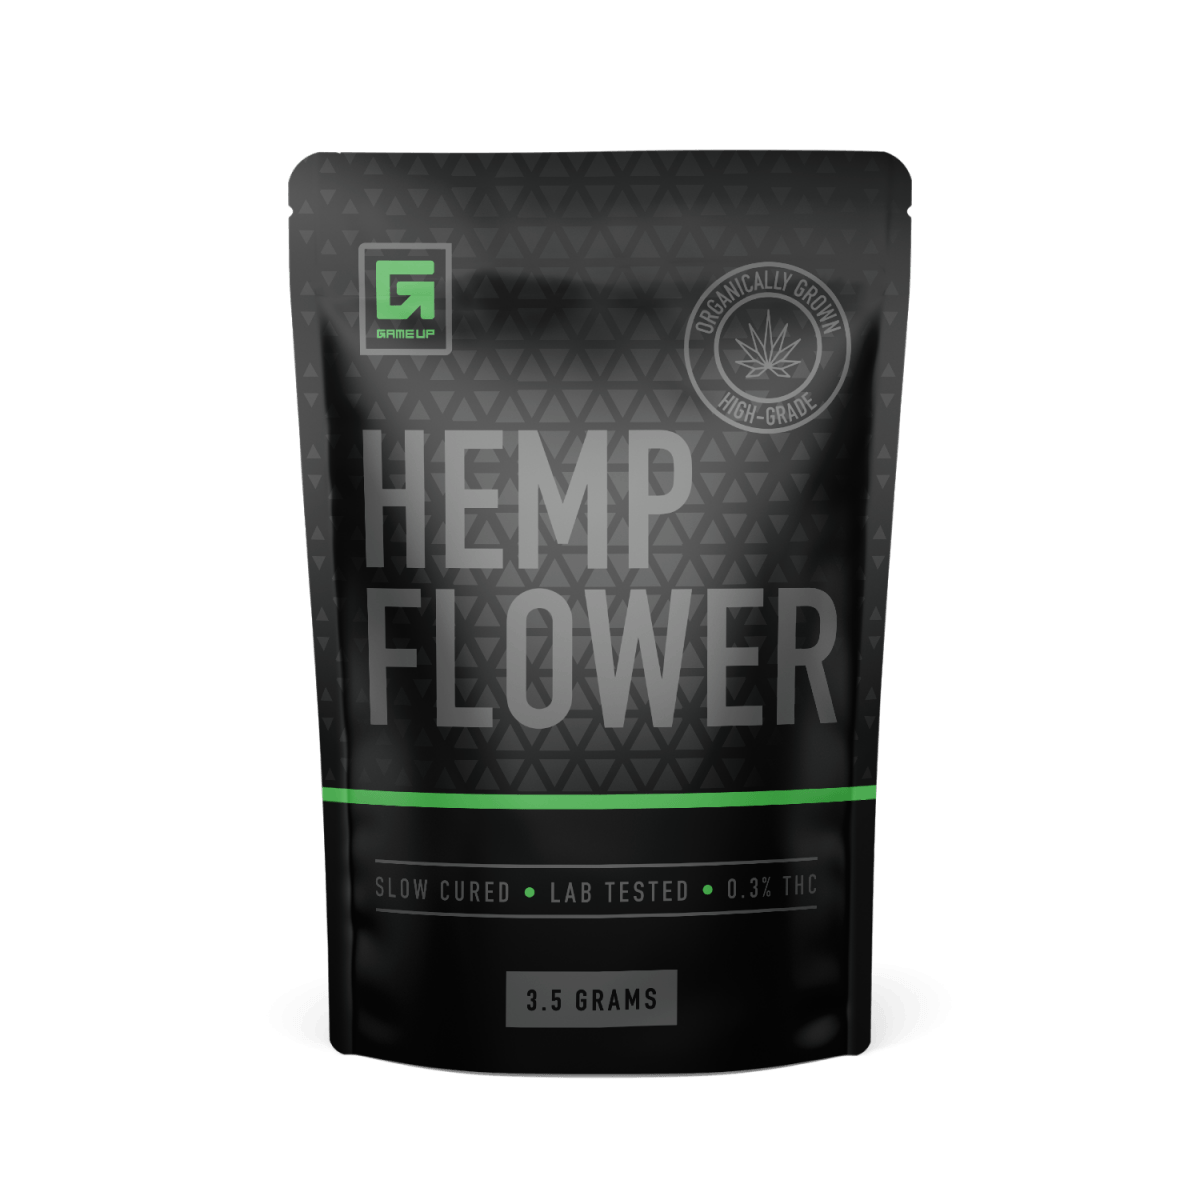 Game Up Nutrition High-CBD Hemp Flower